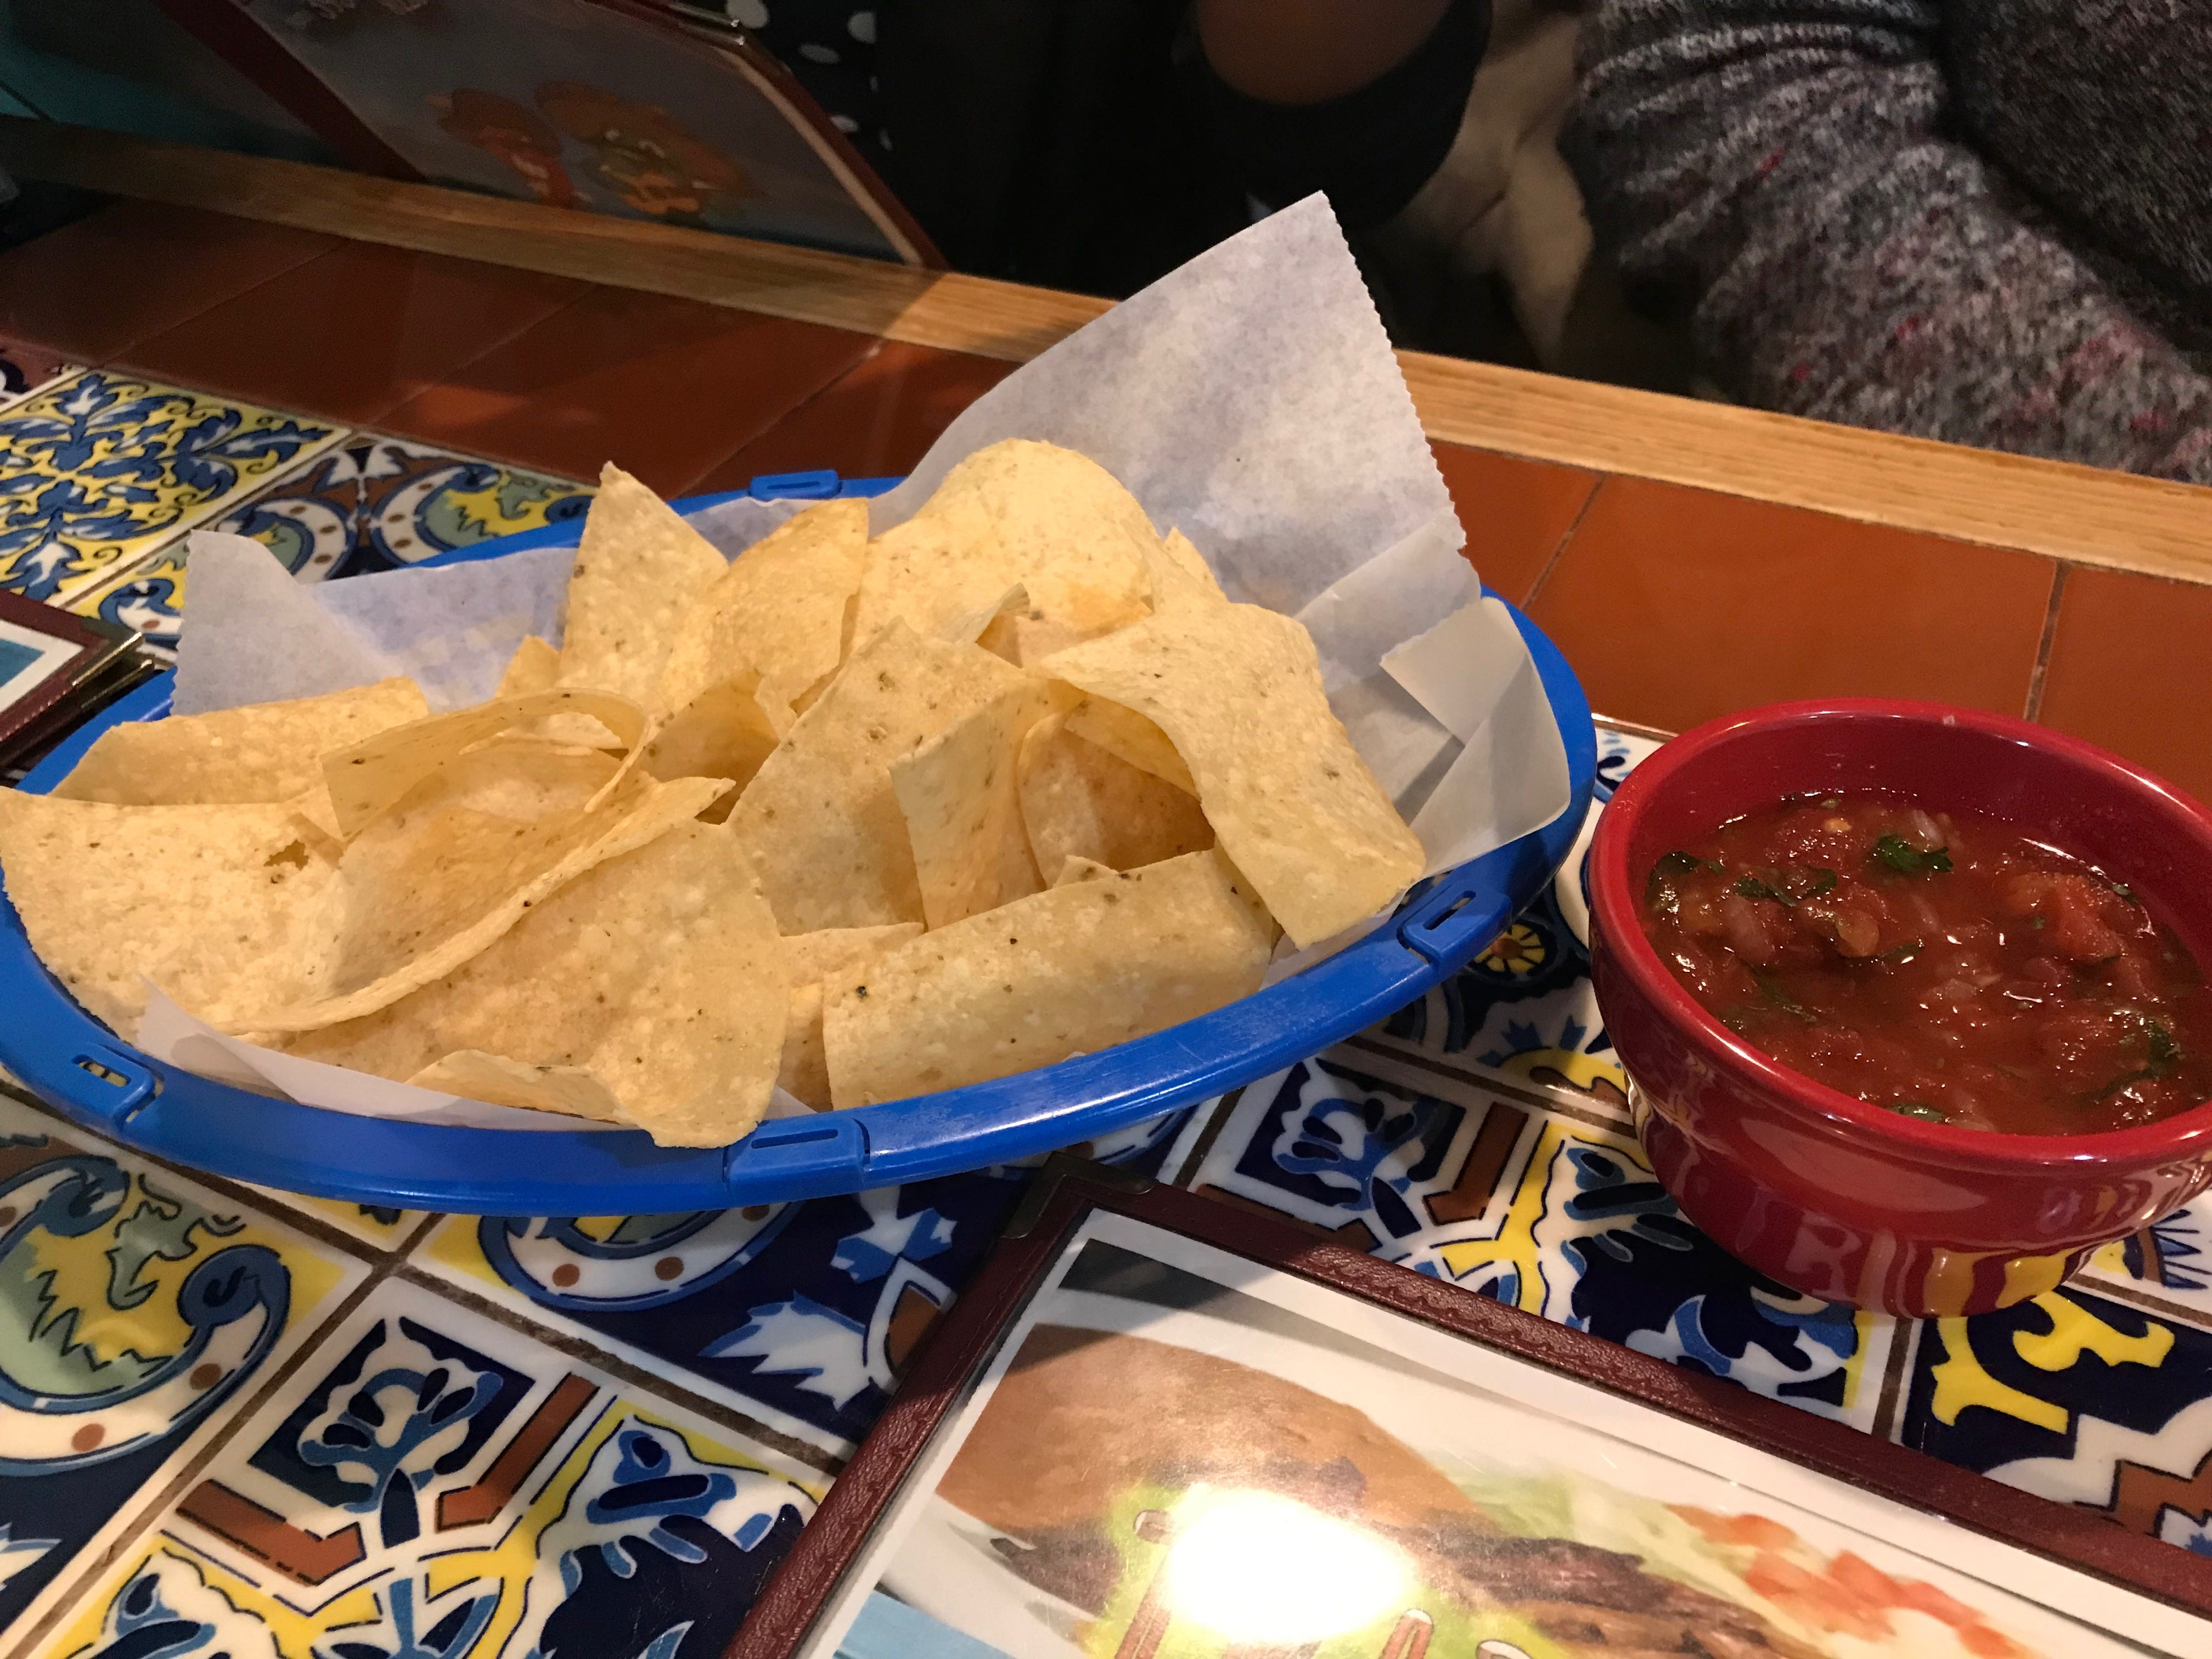 Chips and salsa started off the lunch.